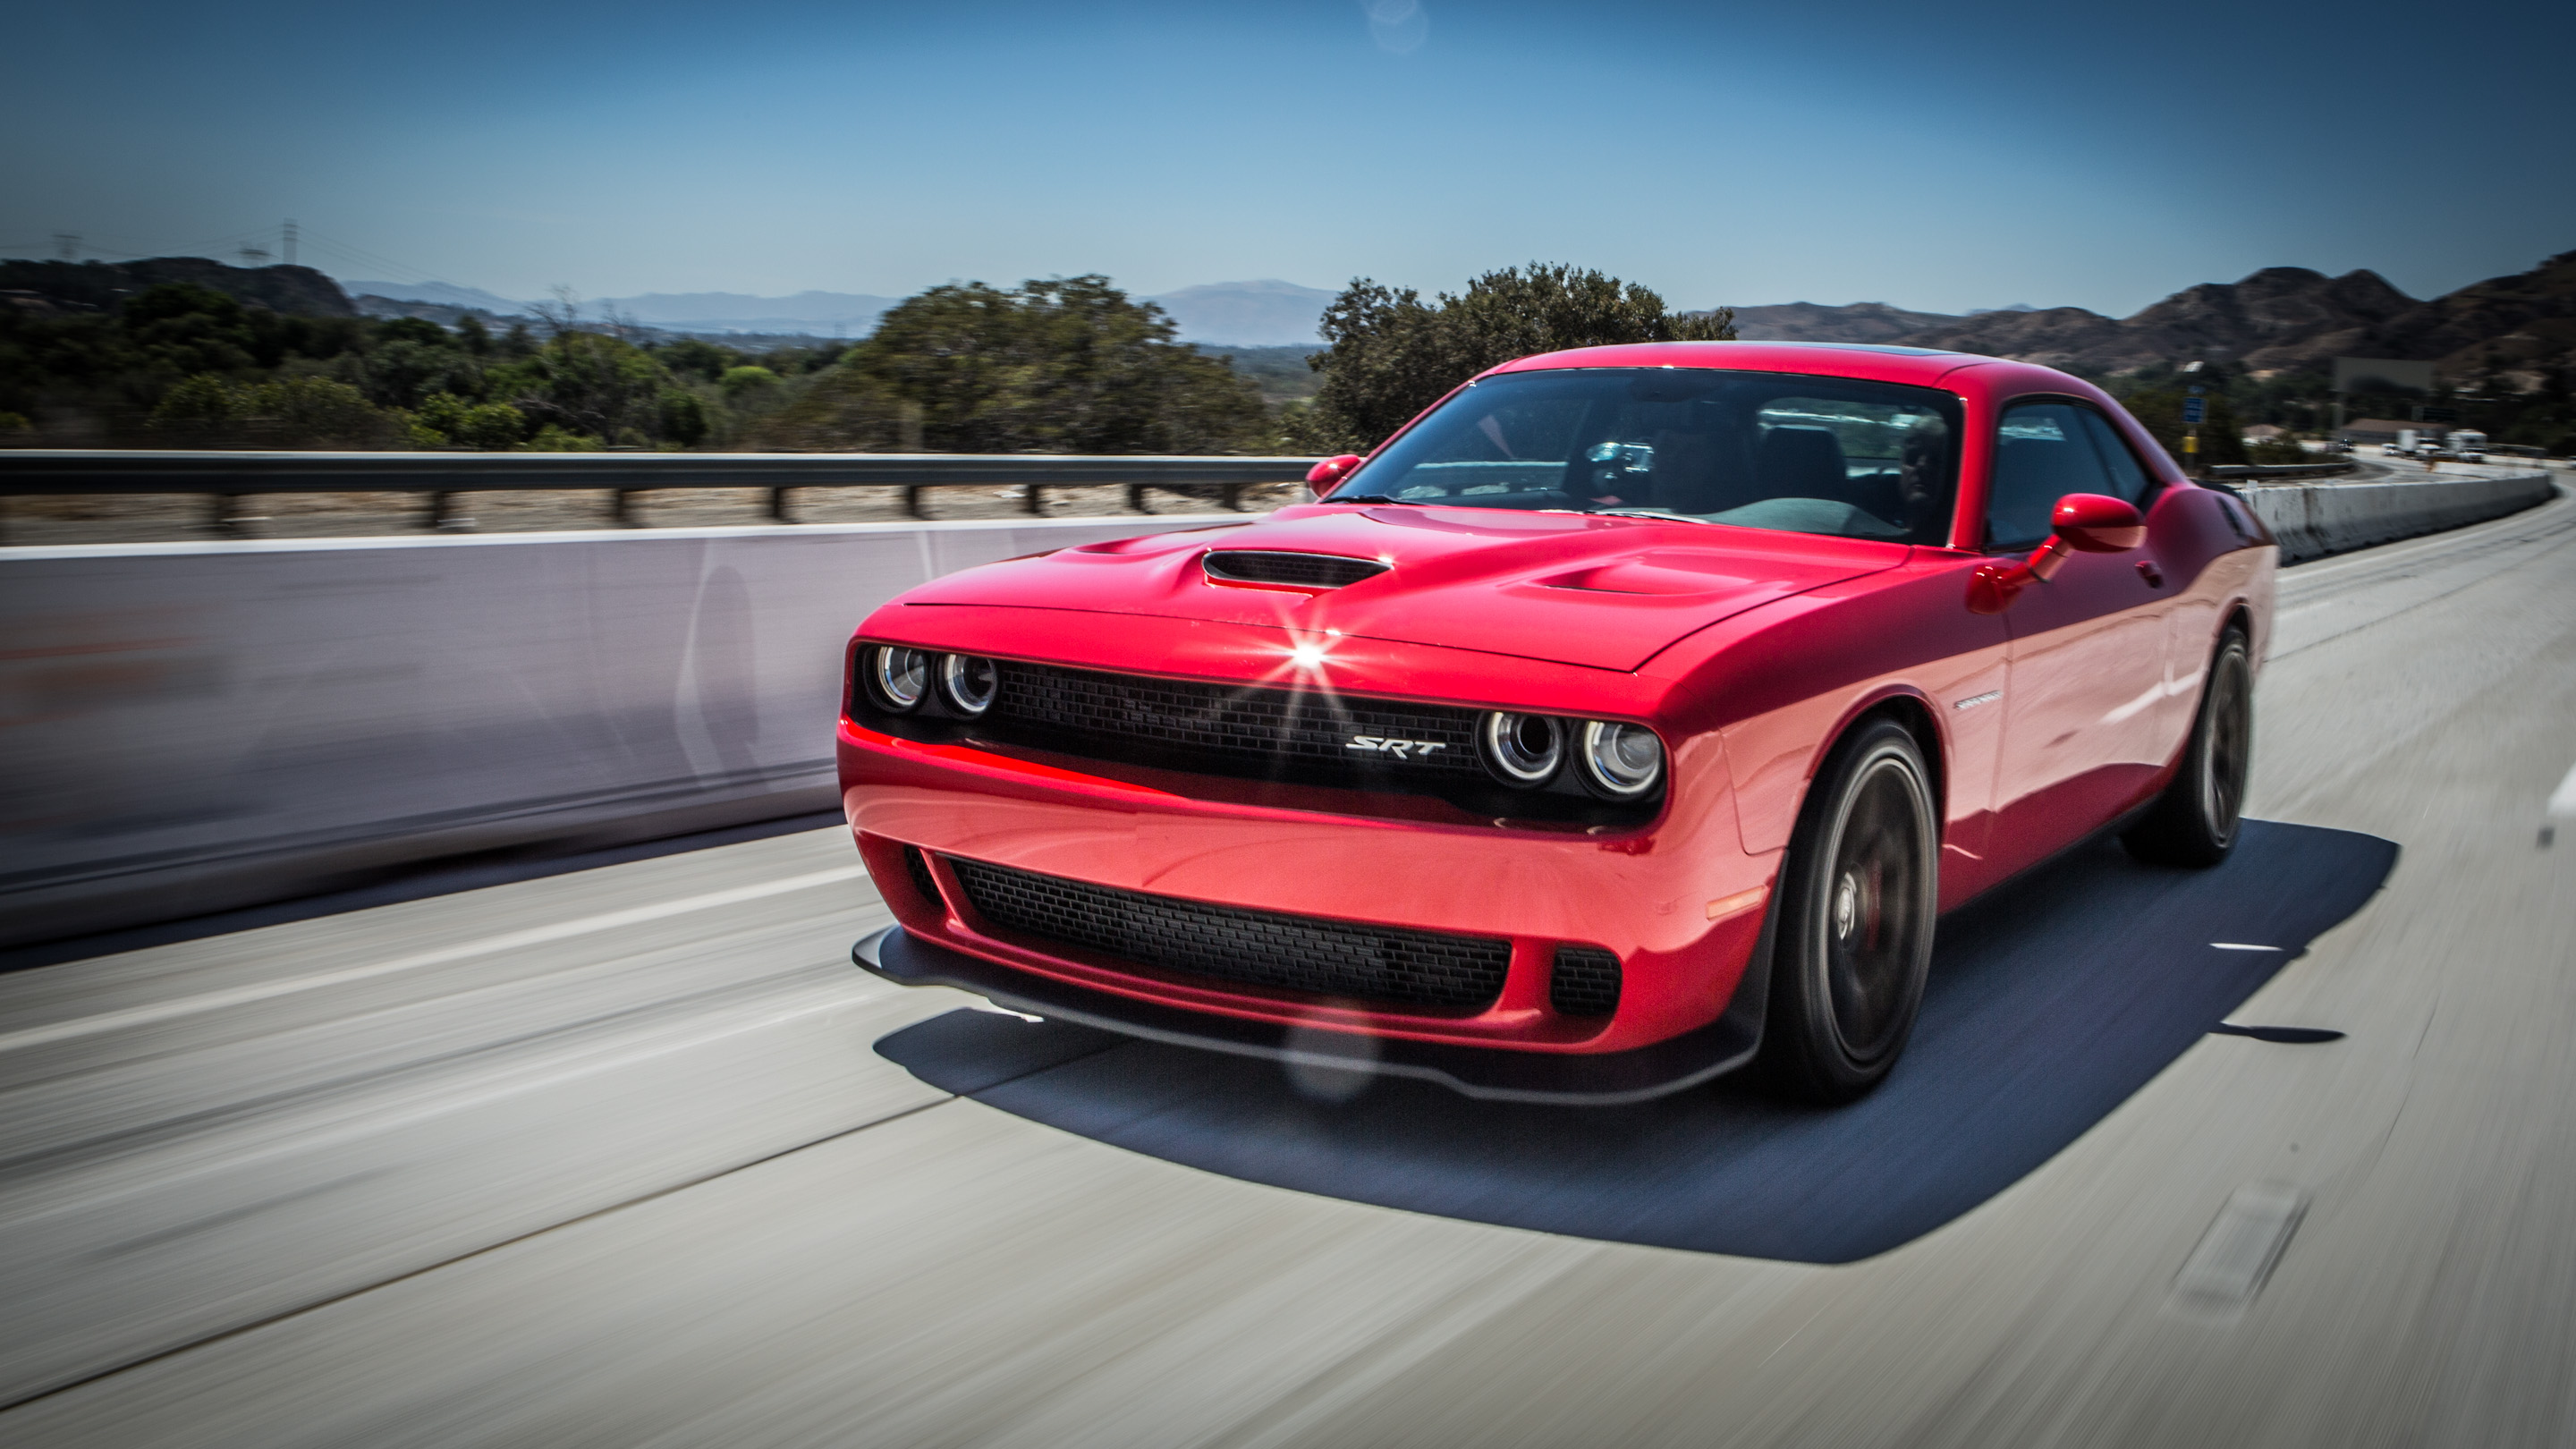 2015 dodge challenger srt hellcat blue images. Black Bedroom Furniture Sets. Home Design Ideas